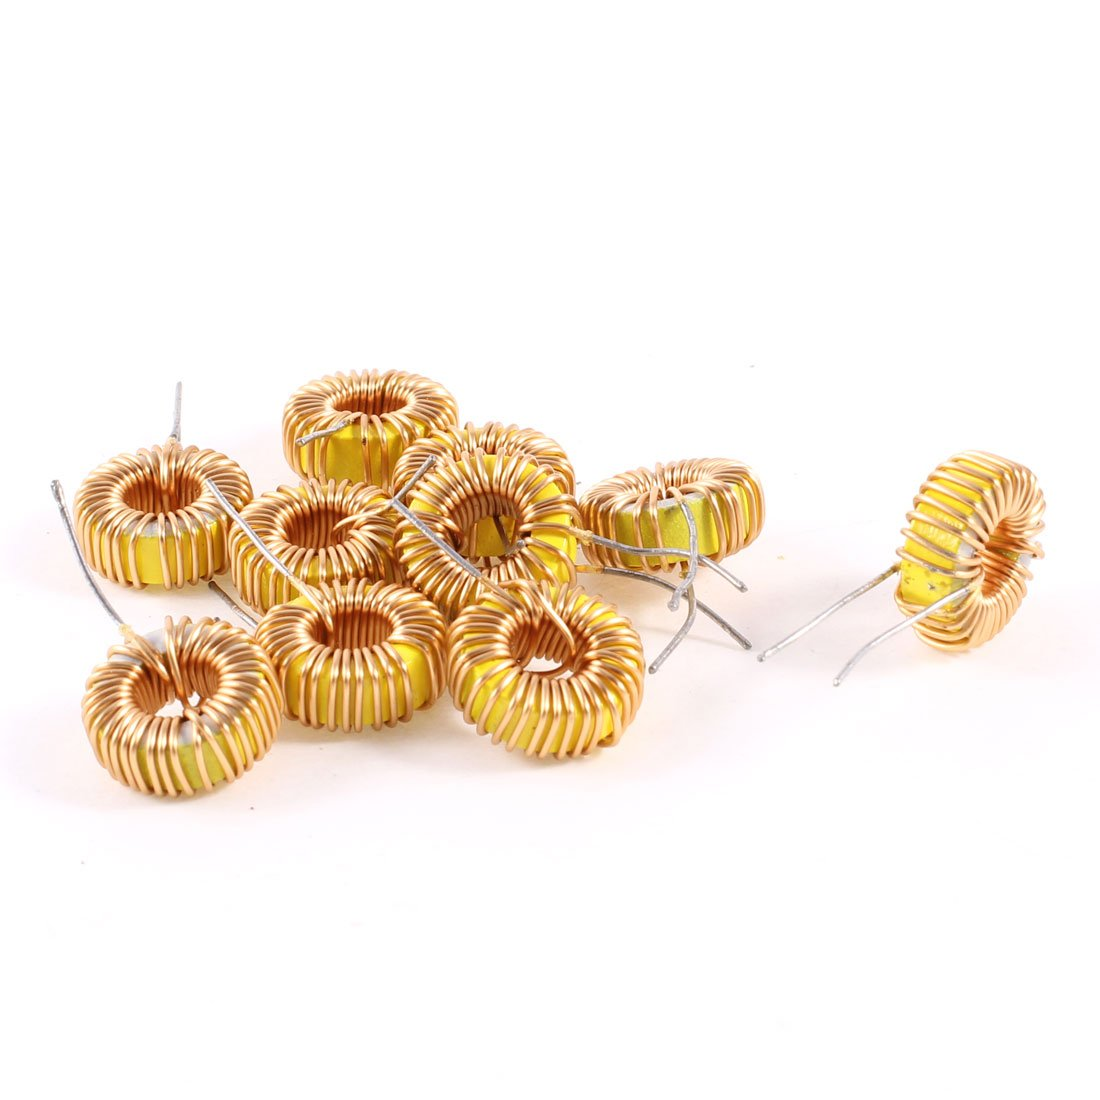 Uxcell a13071500ux0188 10 Piece Toroid Core Inductor Wire Wind Wound 33uH 35mOhm 2 Amp, Coil